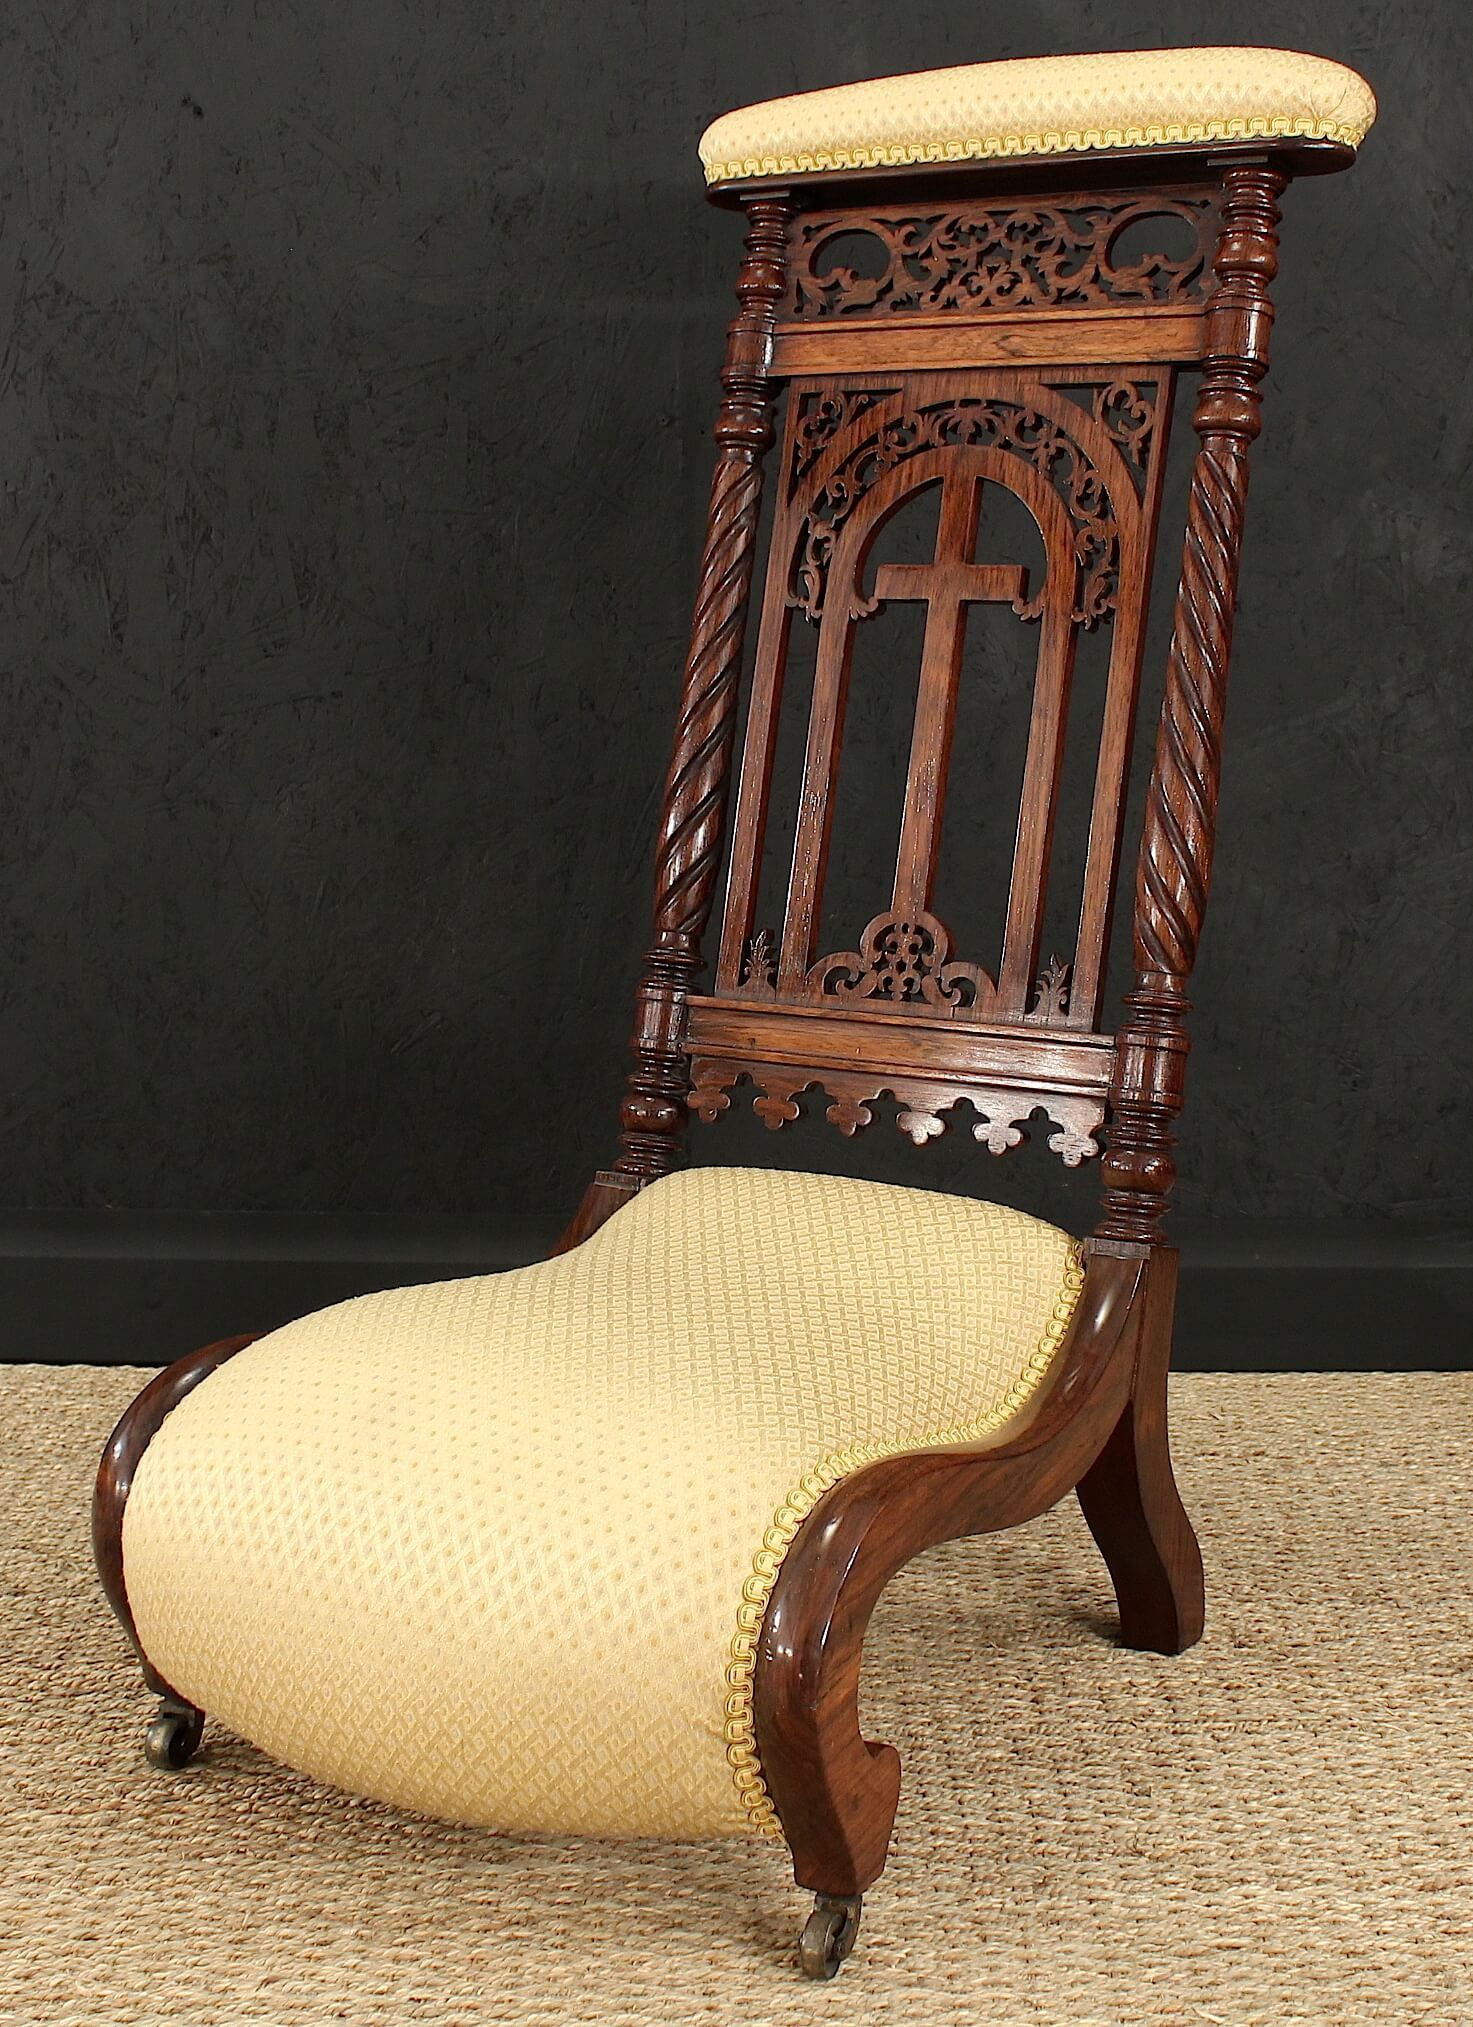 Rosewood Prie-dieu (Prayer Chair) - Gilboy's - Rosewood Prie-dieu (Prayer Chair) - Gilboy's Prayer Chairs